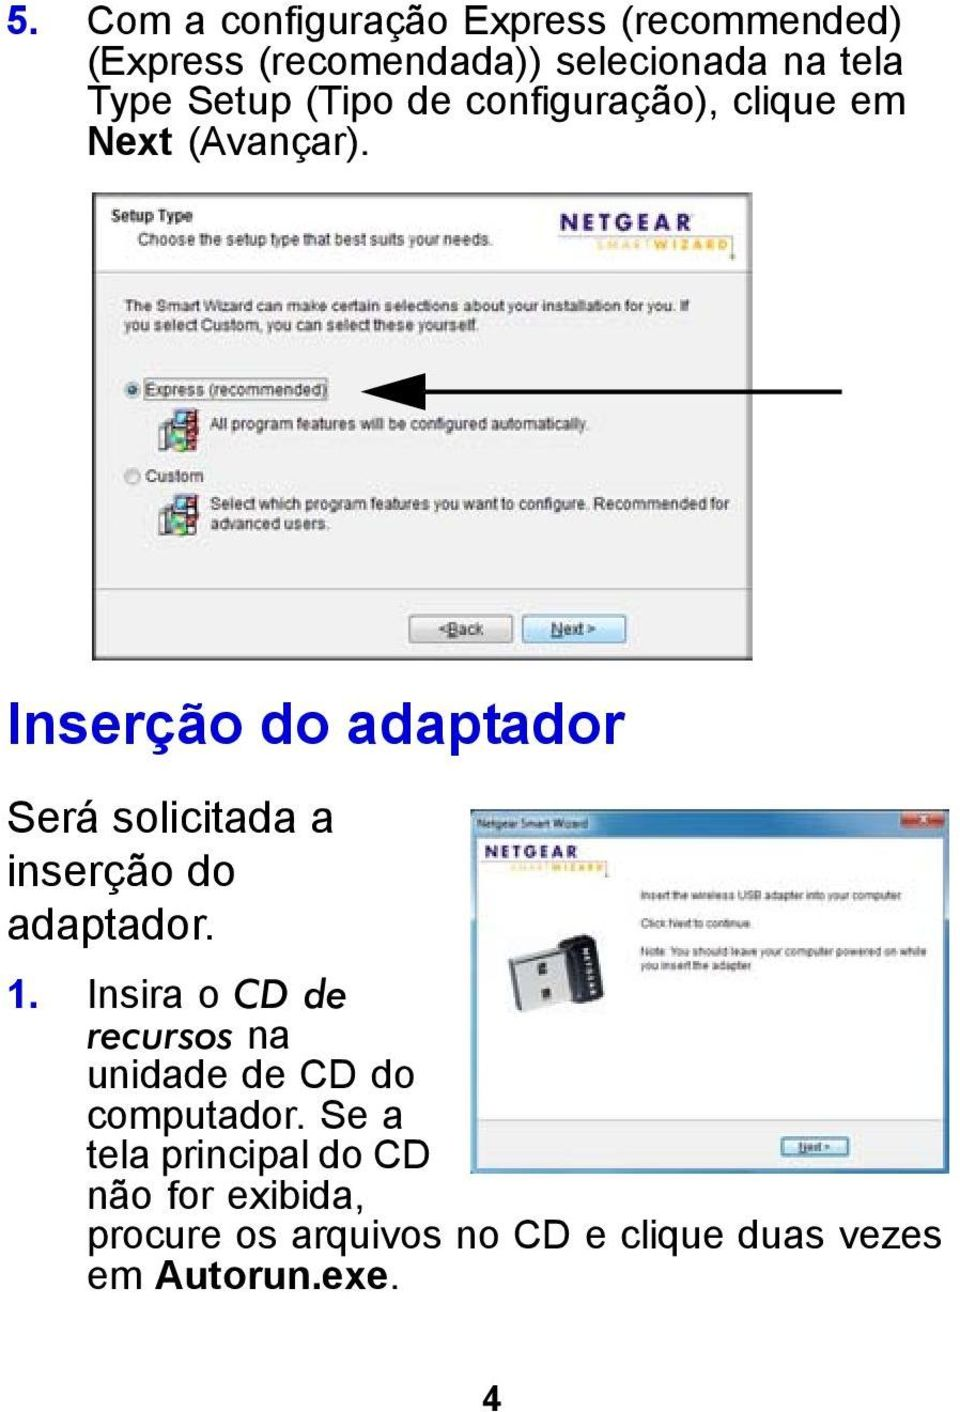 Inserção do adaptador Será solicitada a inserção do adaptador. 1.